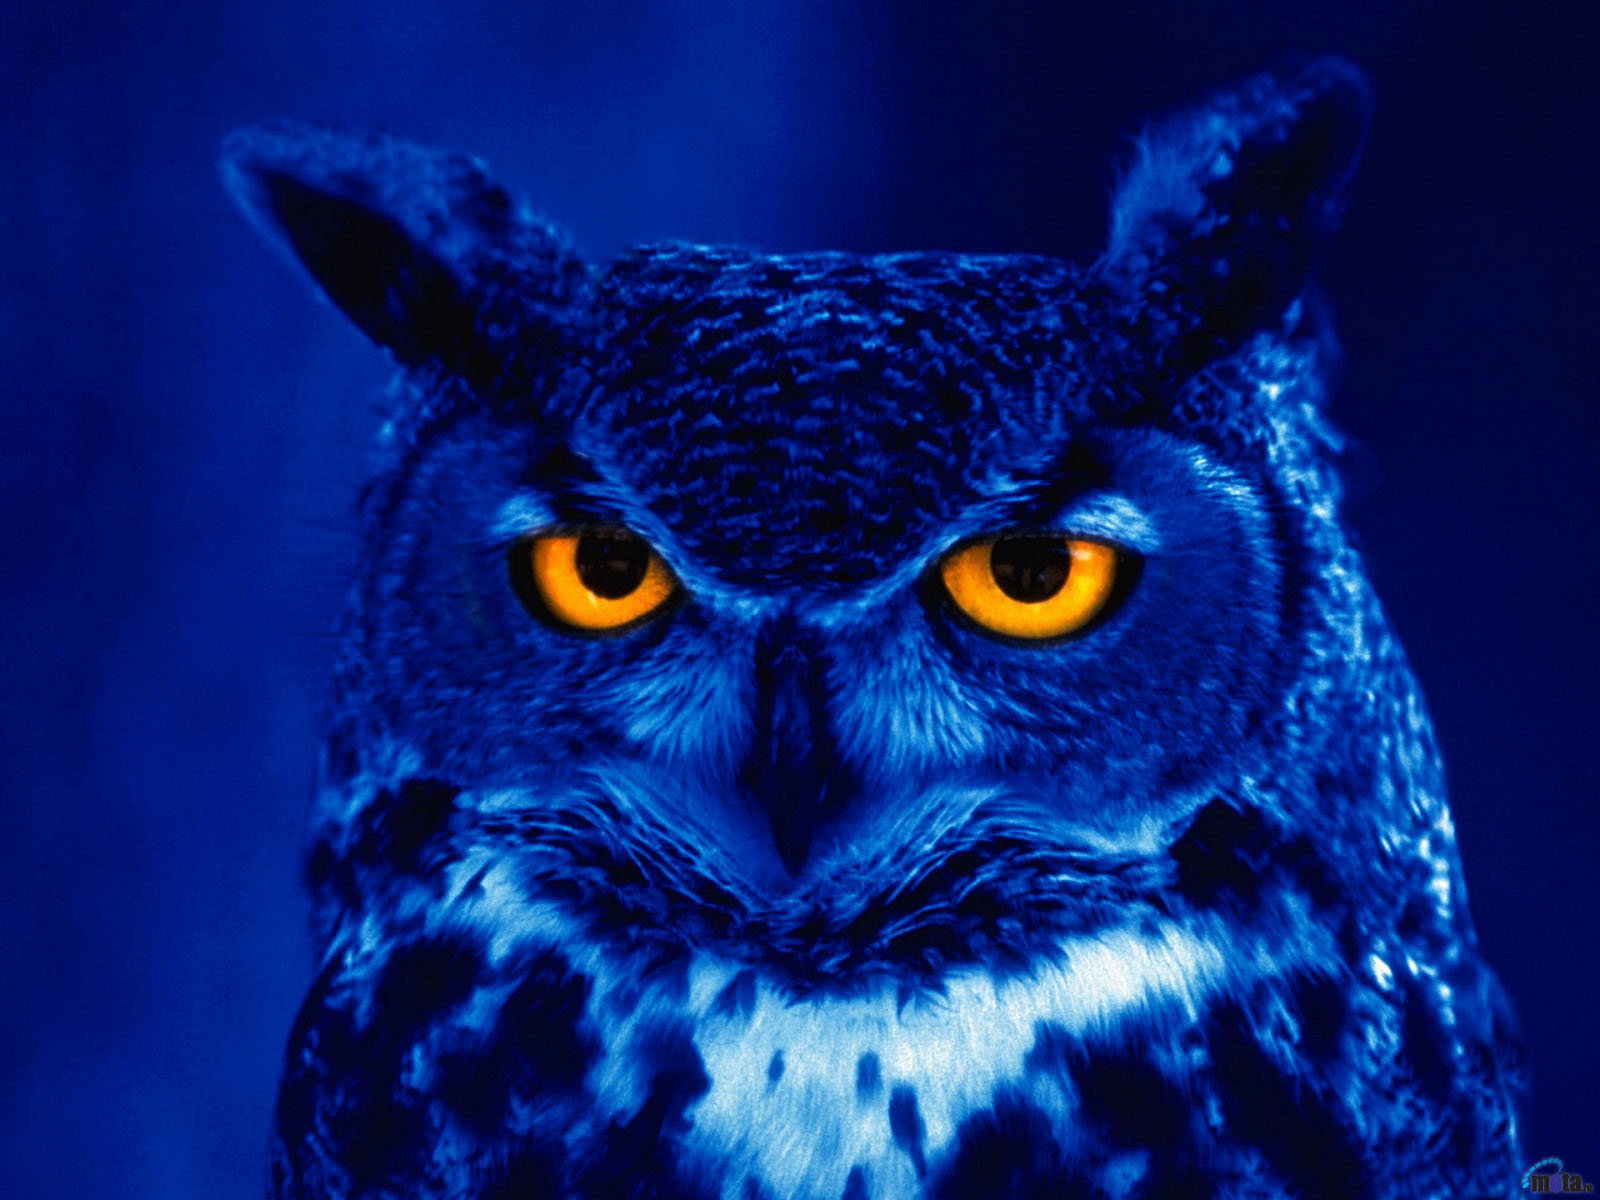 Awesome Great Horned Owl free background ID:297762 for hd 1600x1200 desktop